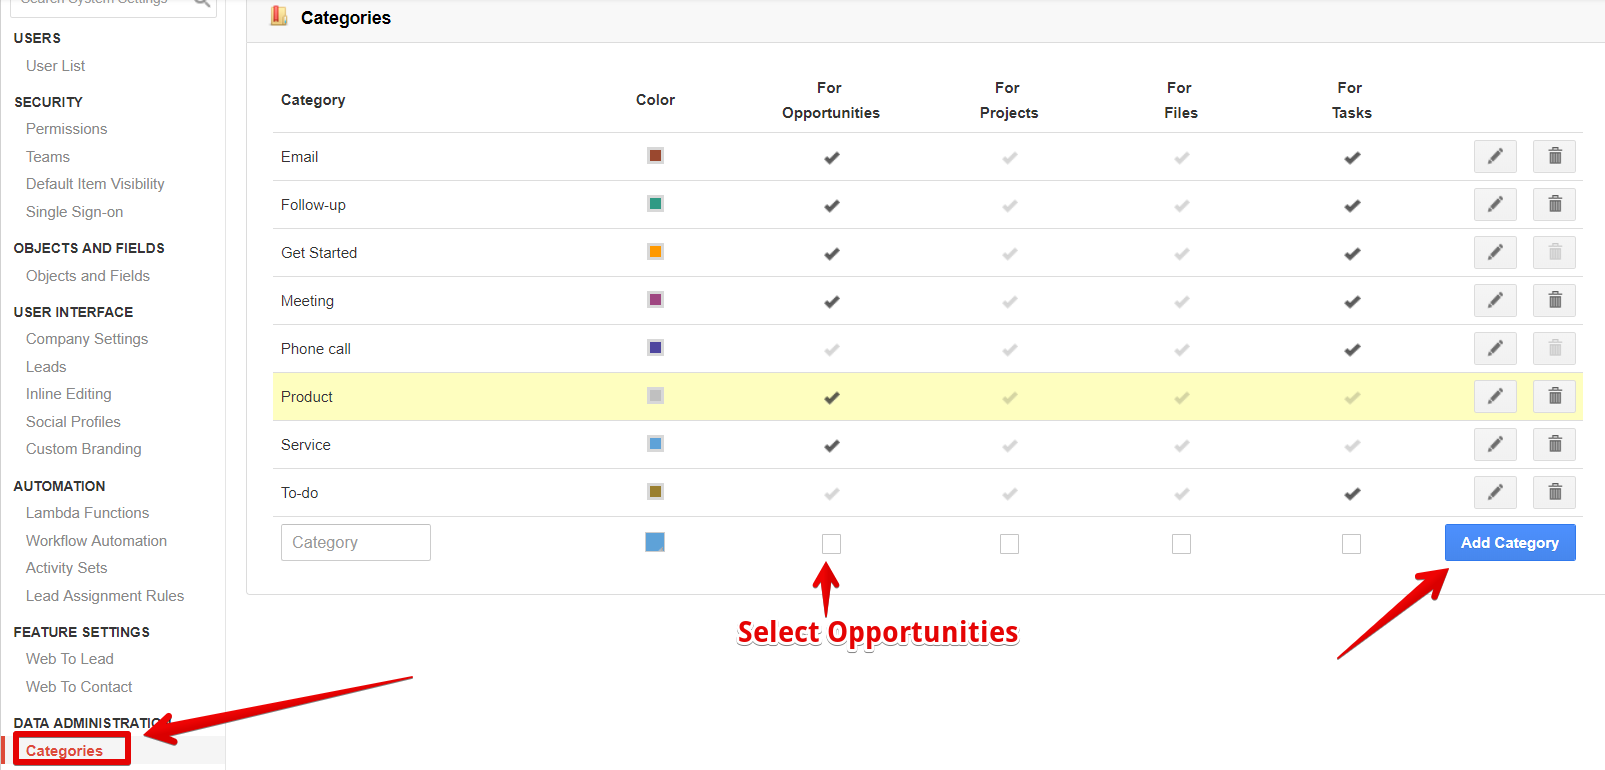 Adding categories in insightly